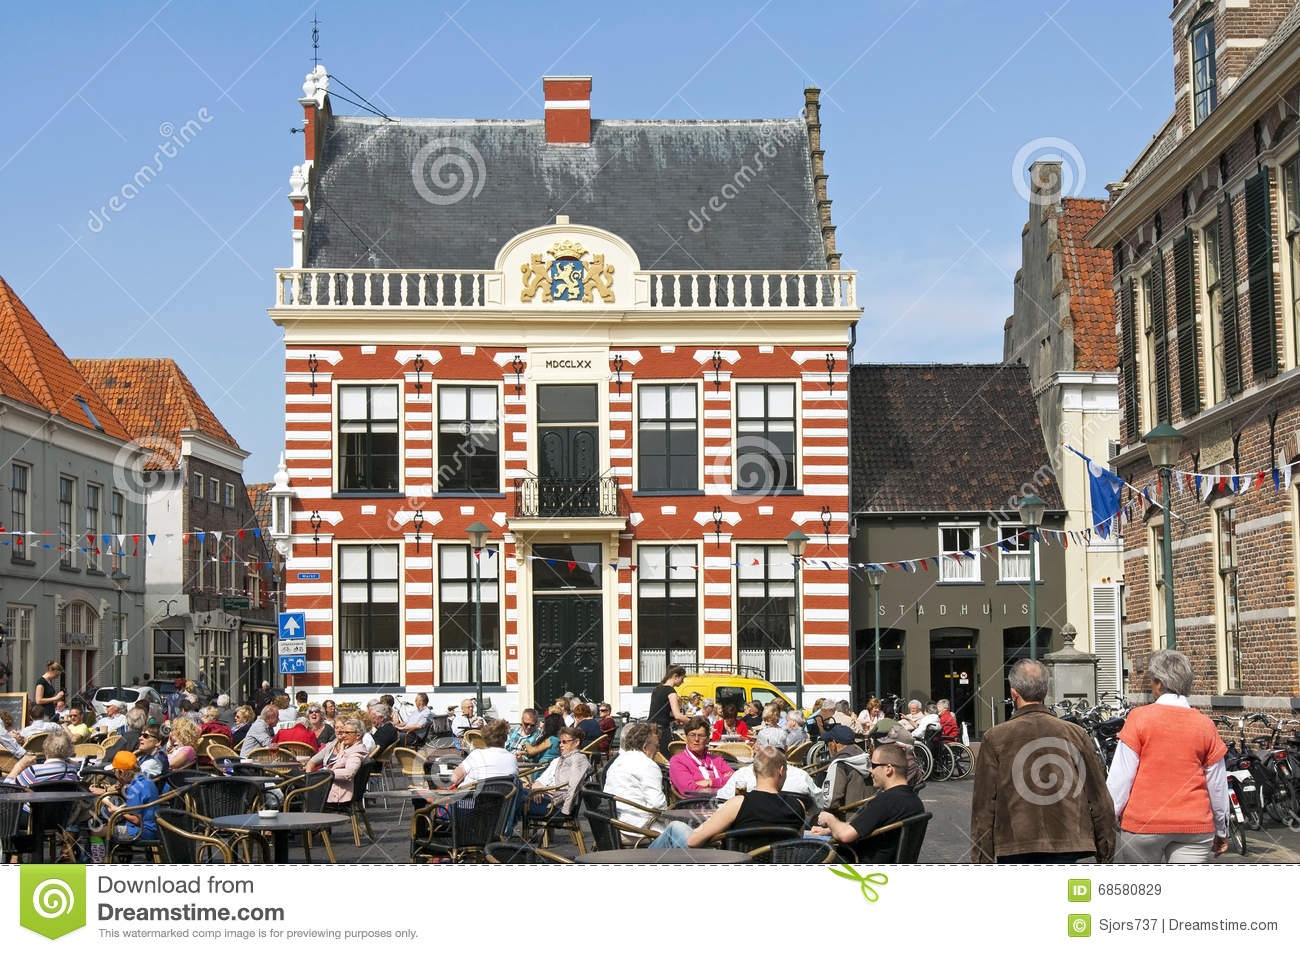 Recreation on terrace on Market with city hall Hattem